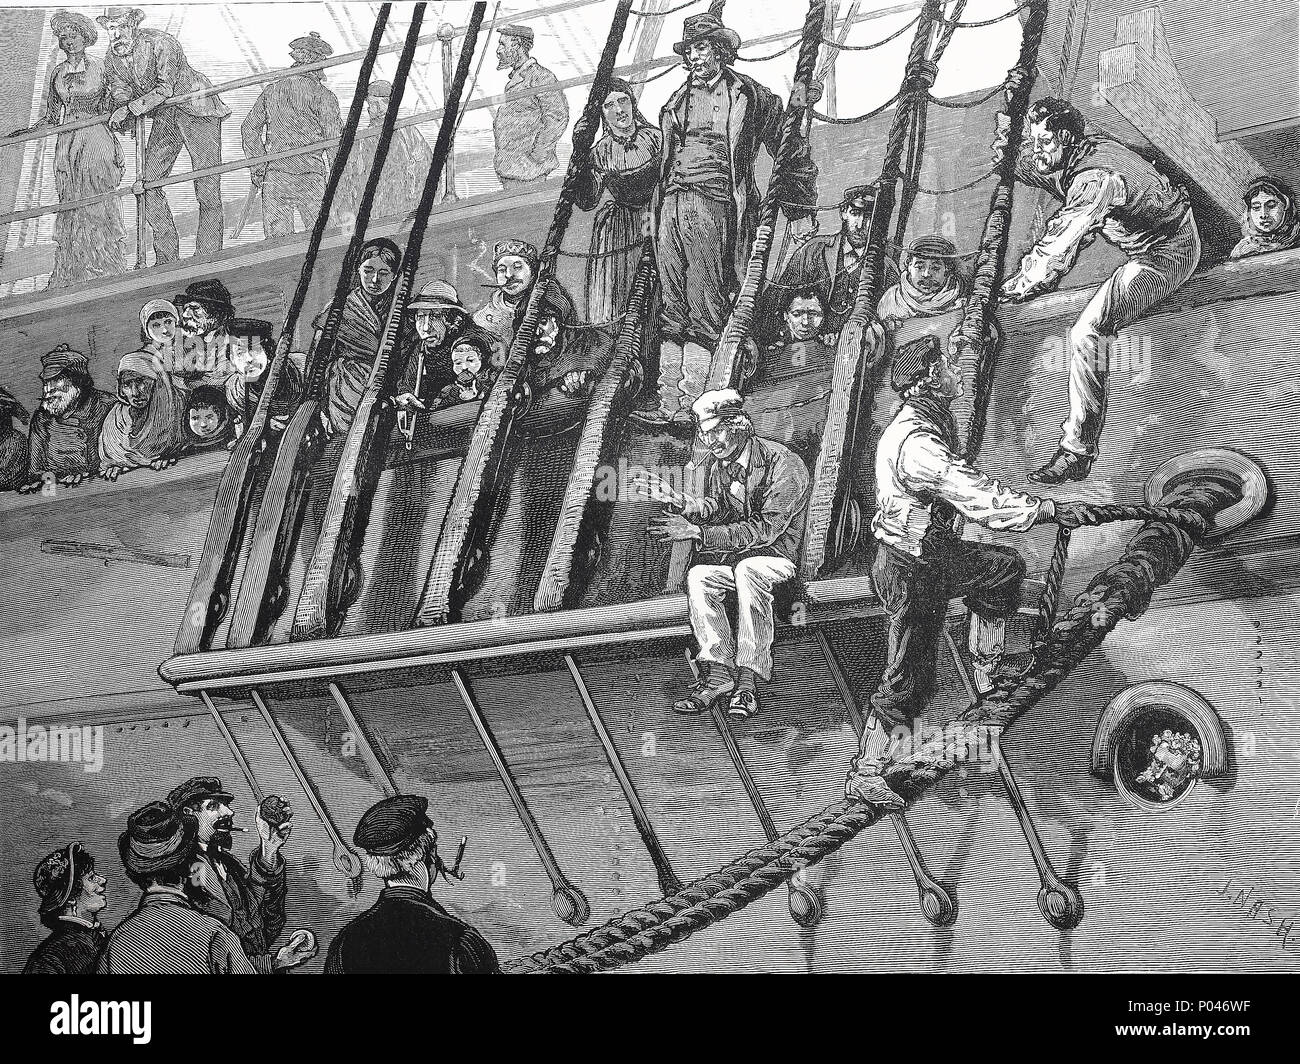 a german emigrant ship in Southhampton dock, England, digital improved reproduction of an original print from the year 1881 - Stock Image